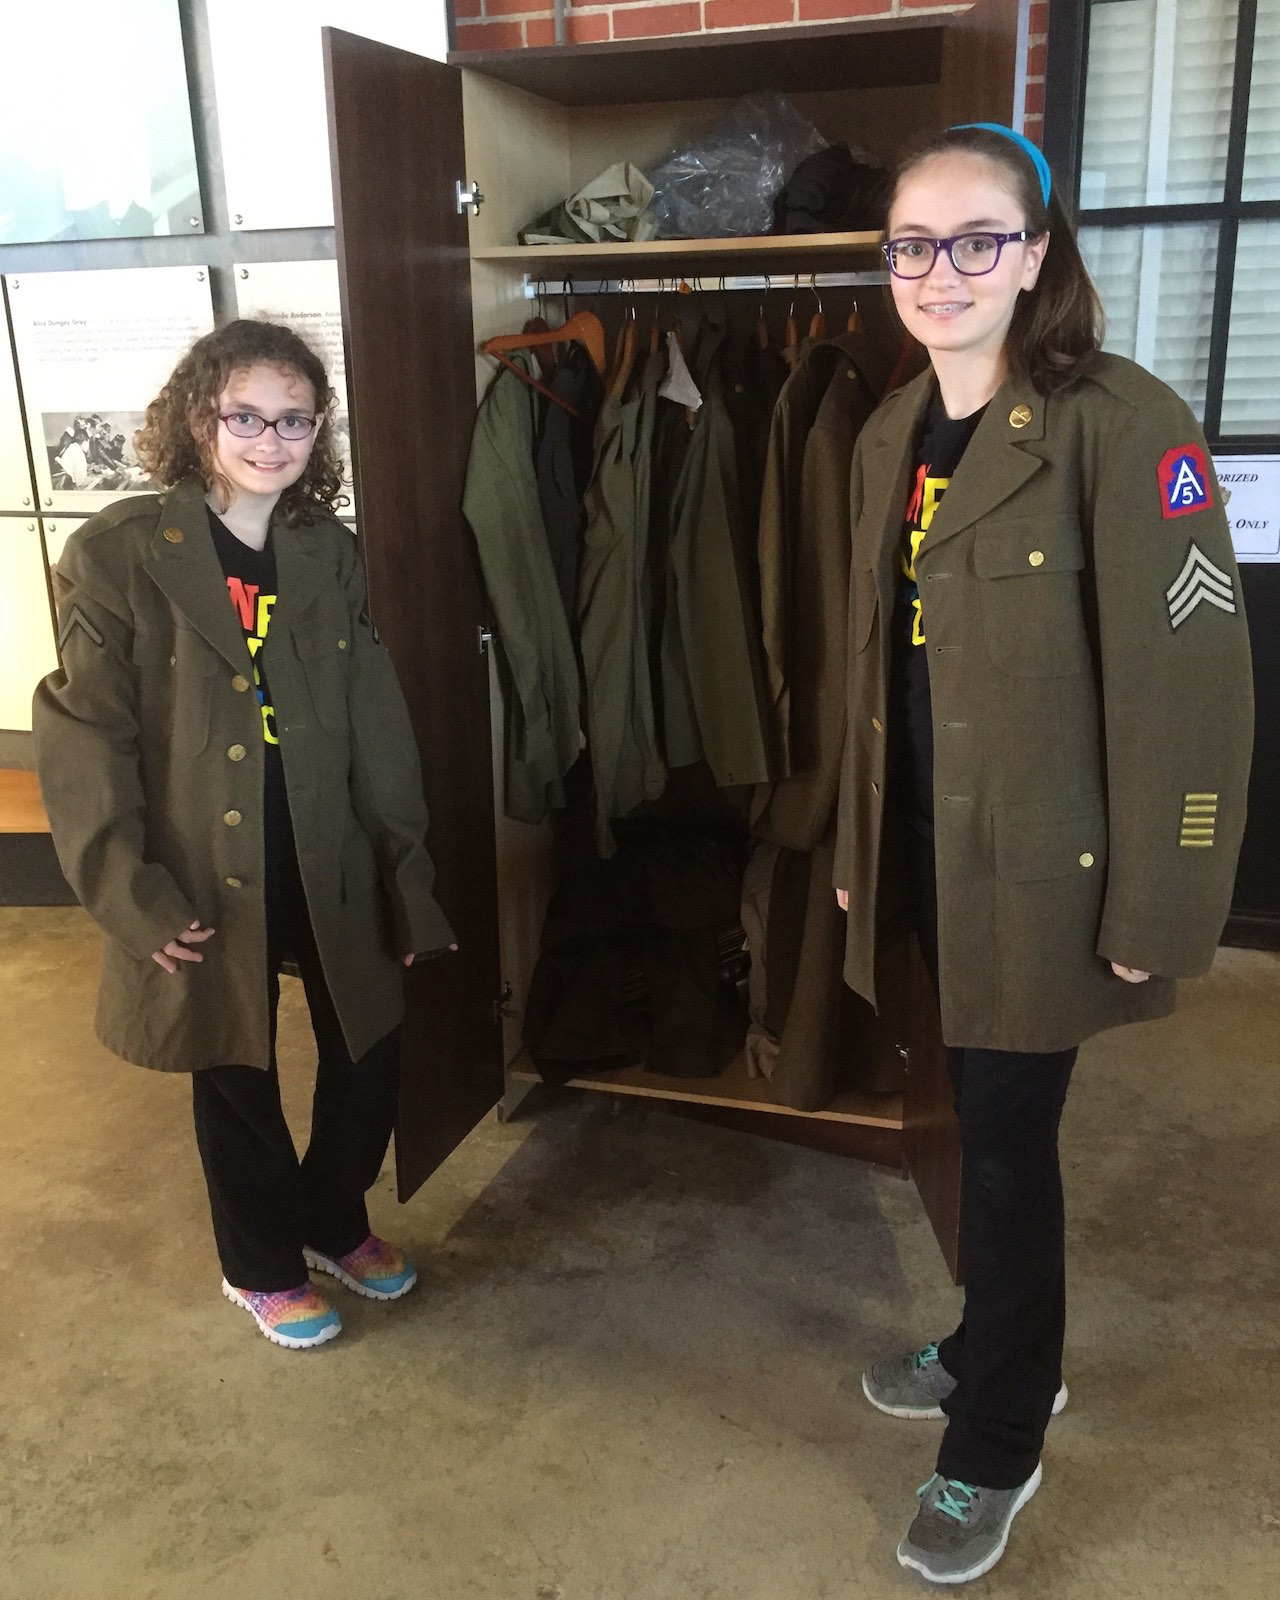 Genevieve and Phoebe try on oversized military uniforms